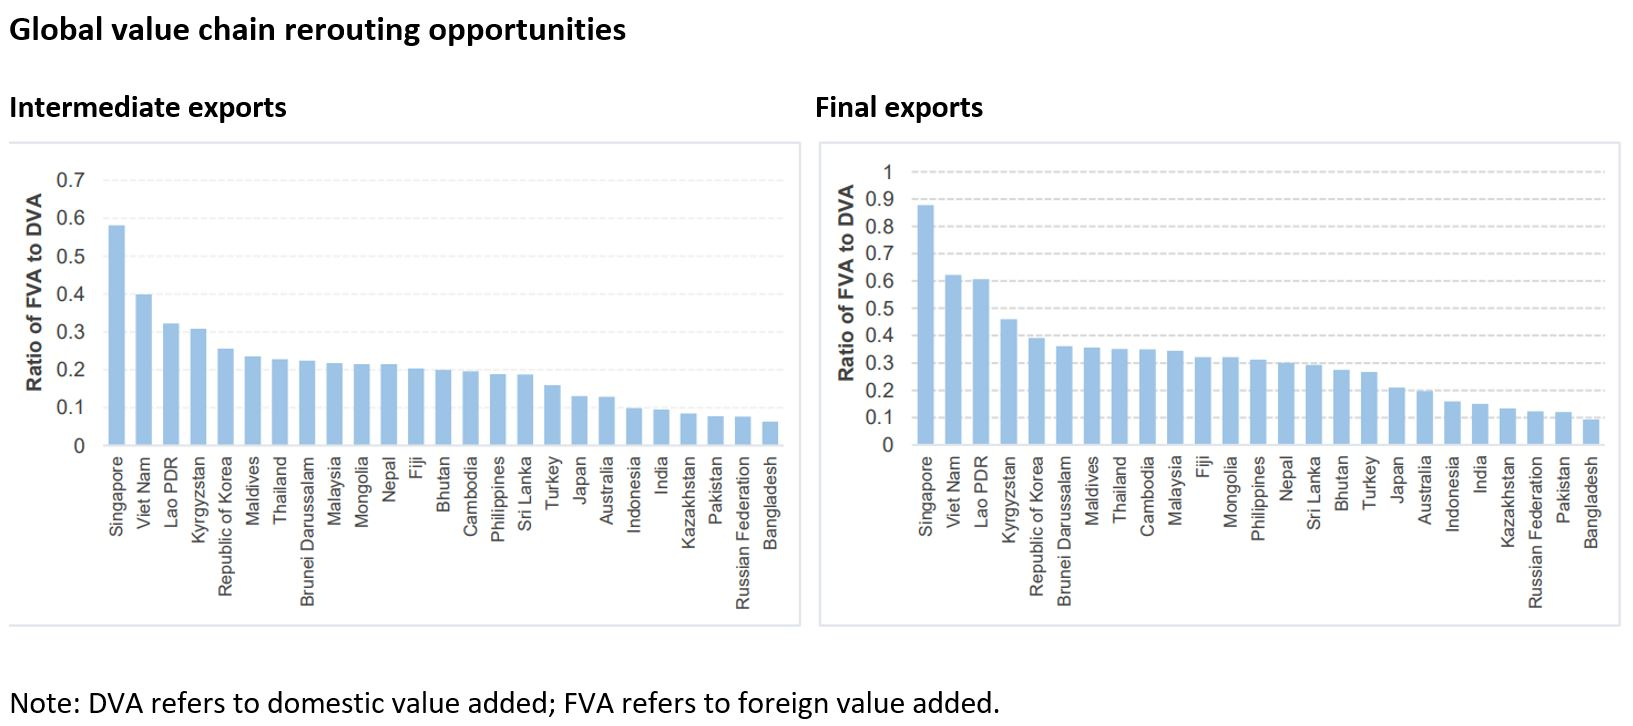 Global value chain rerouting opportunities